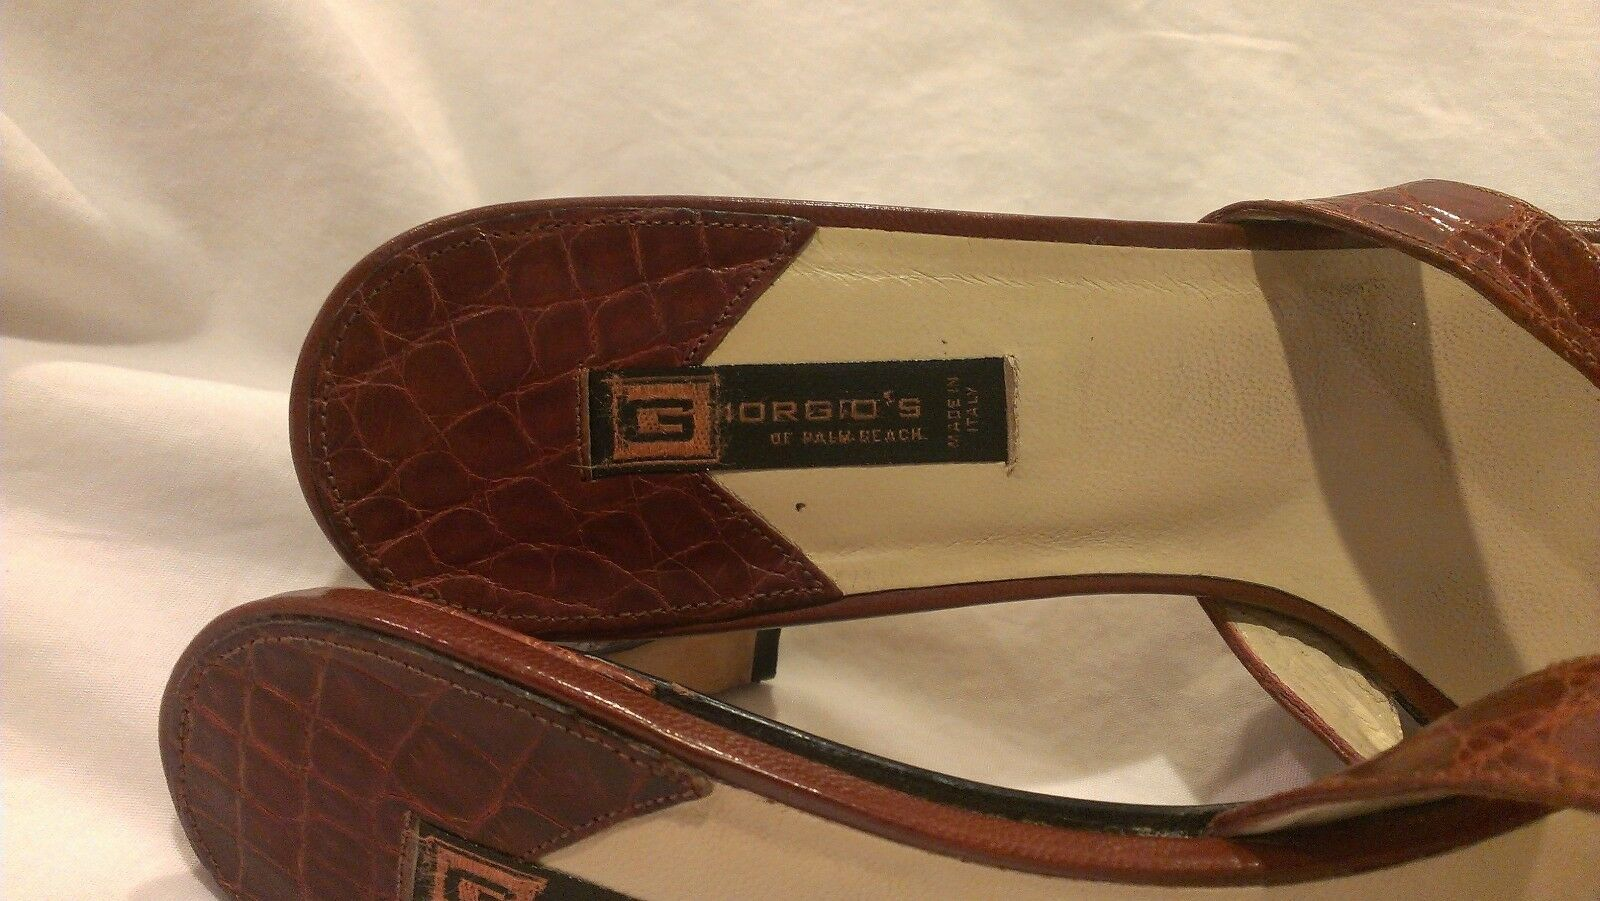 Giorgio's of Heels Palm Beach Chocolate Brown Alligator Strappy Heels of Shoes size 8 M ce4d15